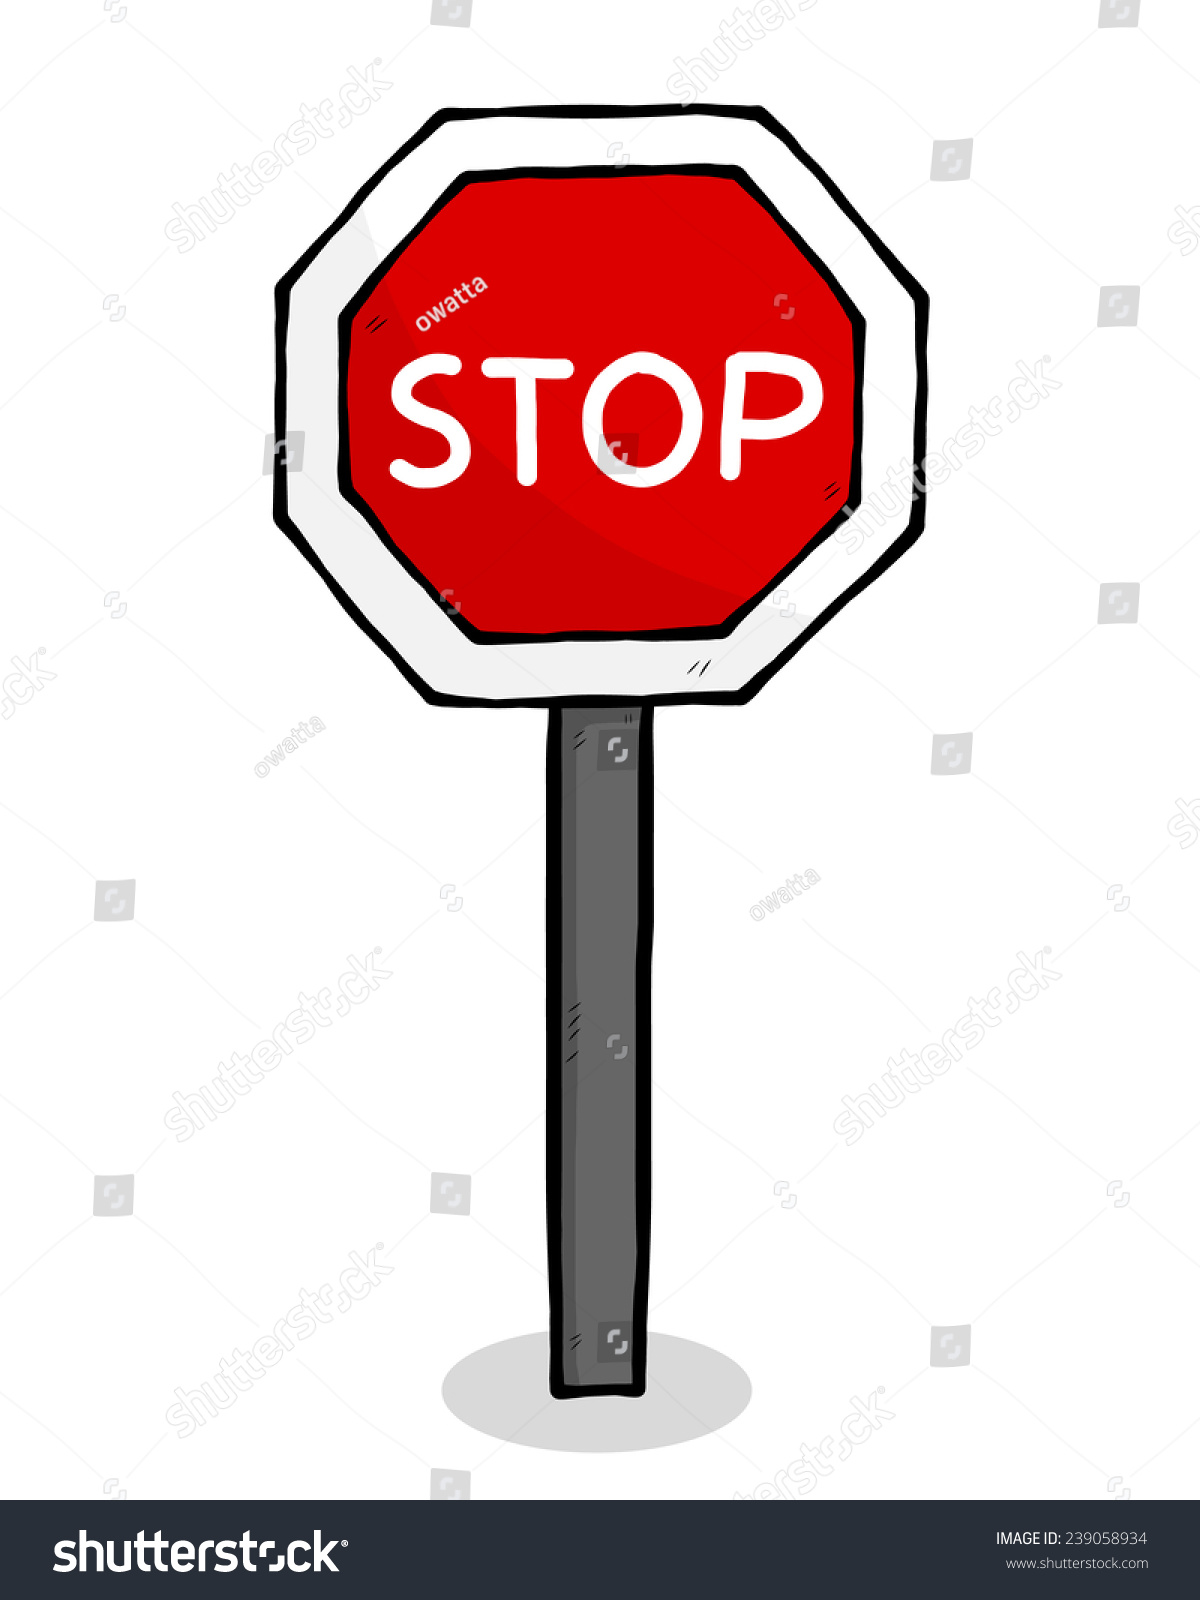 Stop Traffic Sign Cartoon Vector Illustration Stock Vector. Endocrine Signs. East Coast Signs Of Stroke. Dysthymia Signs. Control Panel Signs. Toenail Discoloration Signs. Hotel Bed Signs Of Stroke. Peptic Ulcer Signs Of Stroke. Scholarship Signs